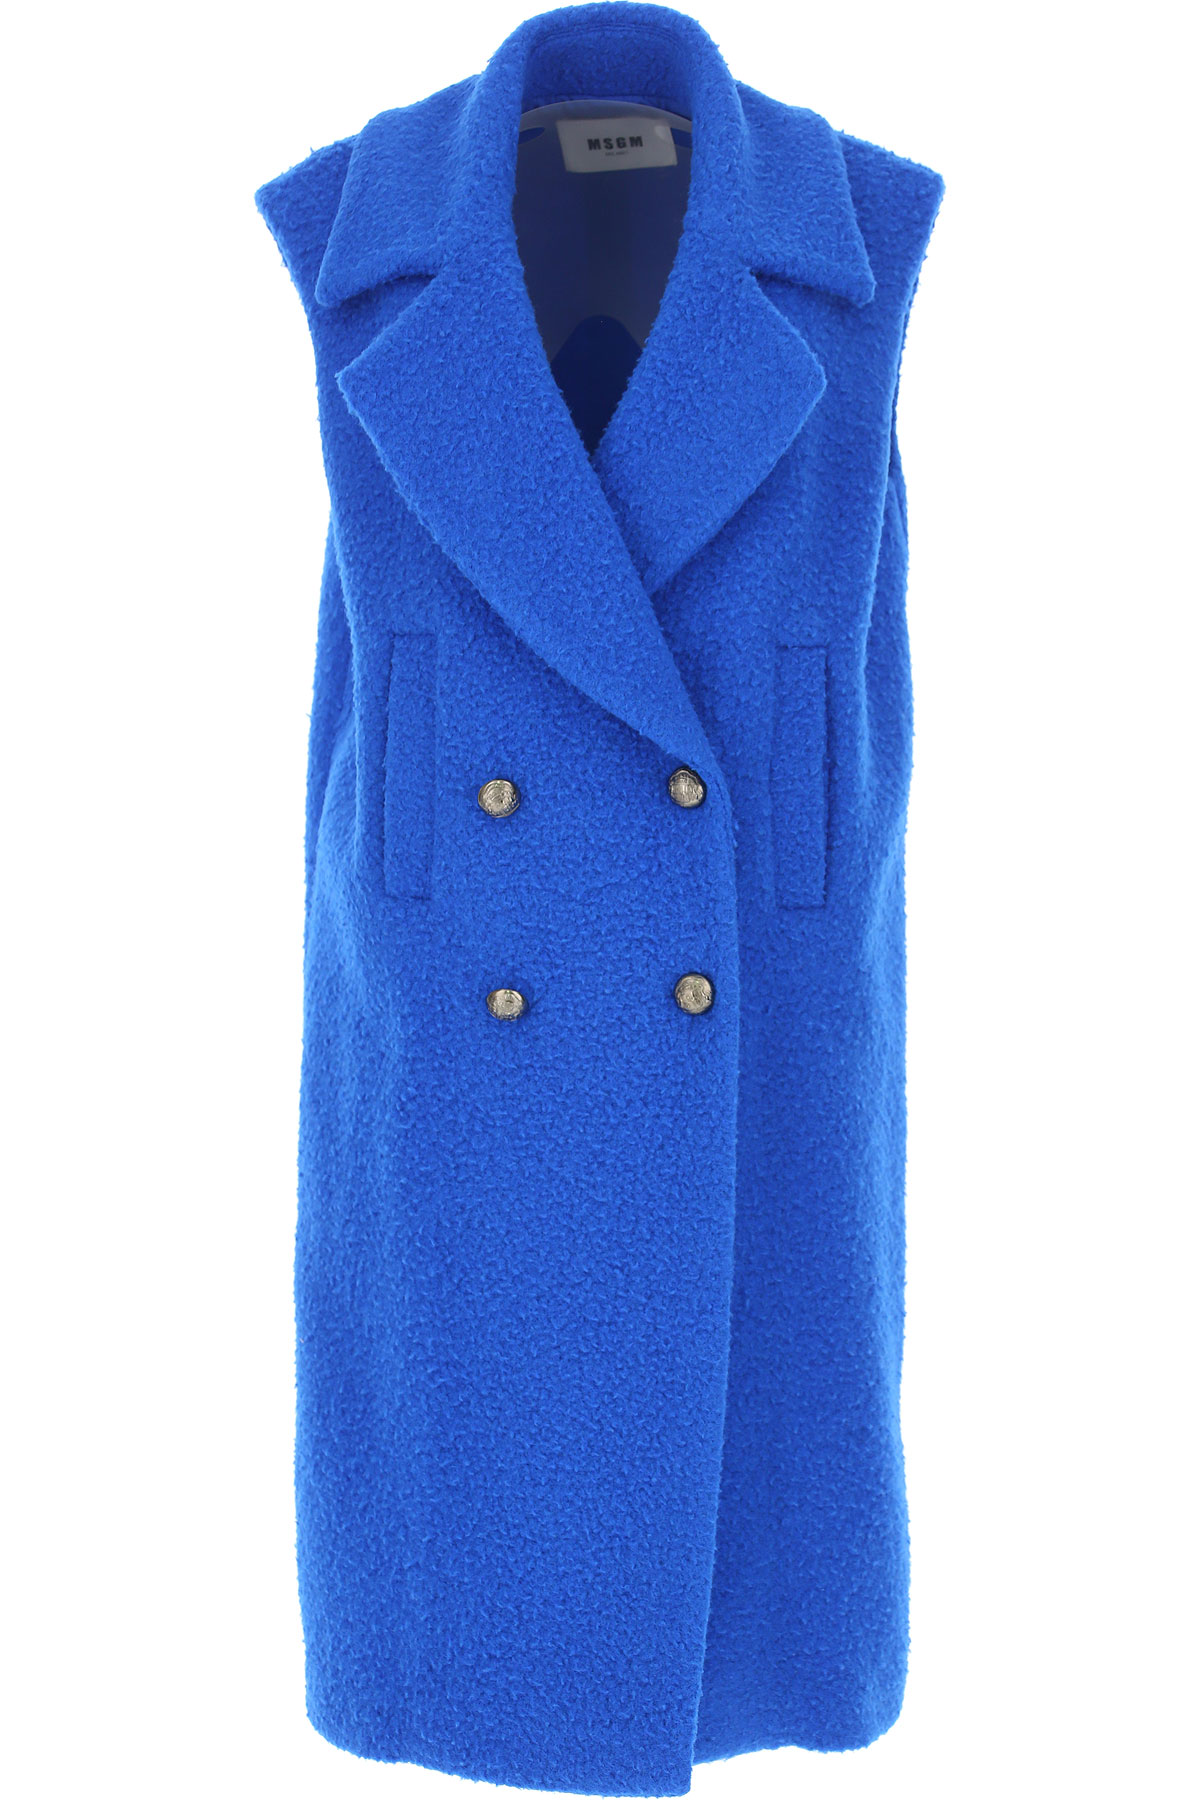 Image of MSGM Women\'s Coat, Electric Blue, Virgin wool, 2017, UK 6 - US 4 - EU 38 UK 8 - US 6 - EU 40